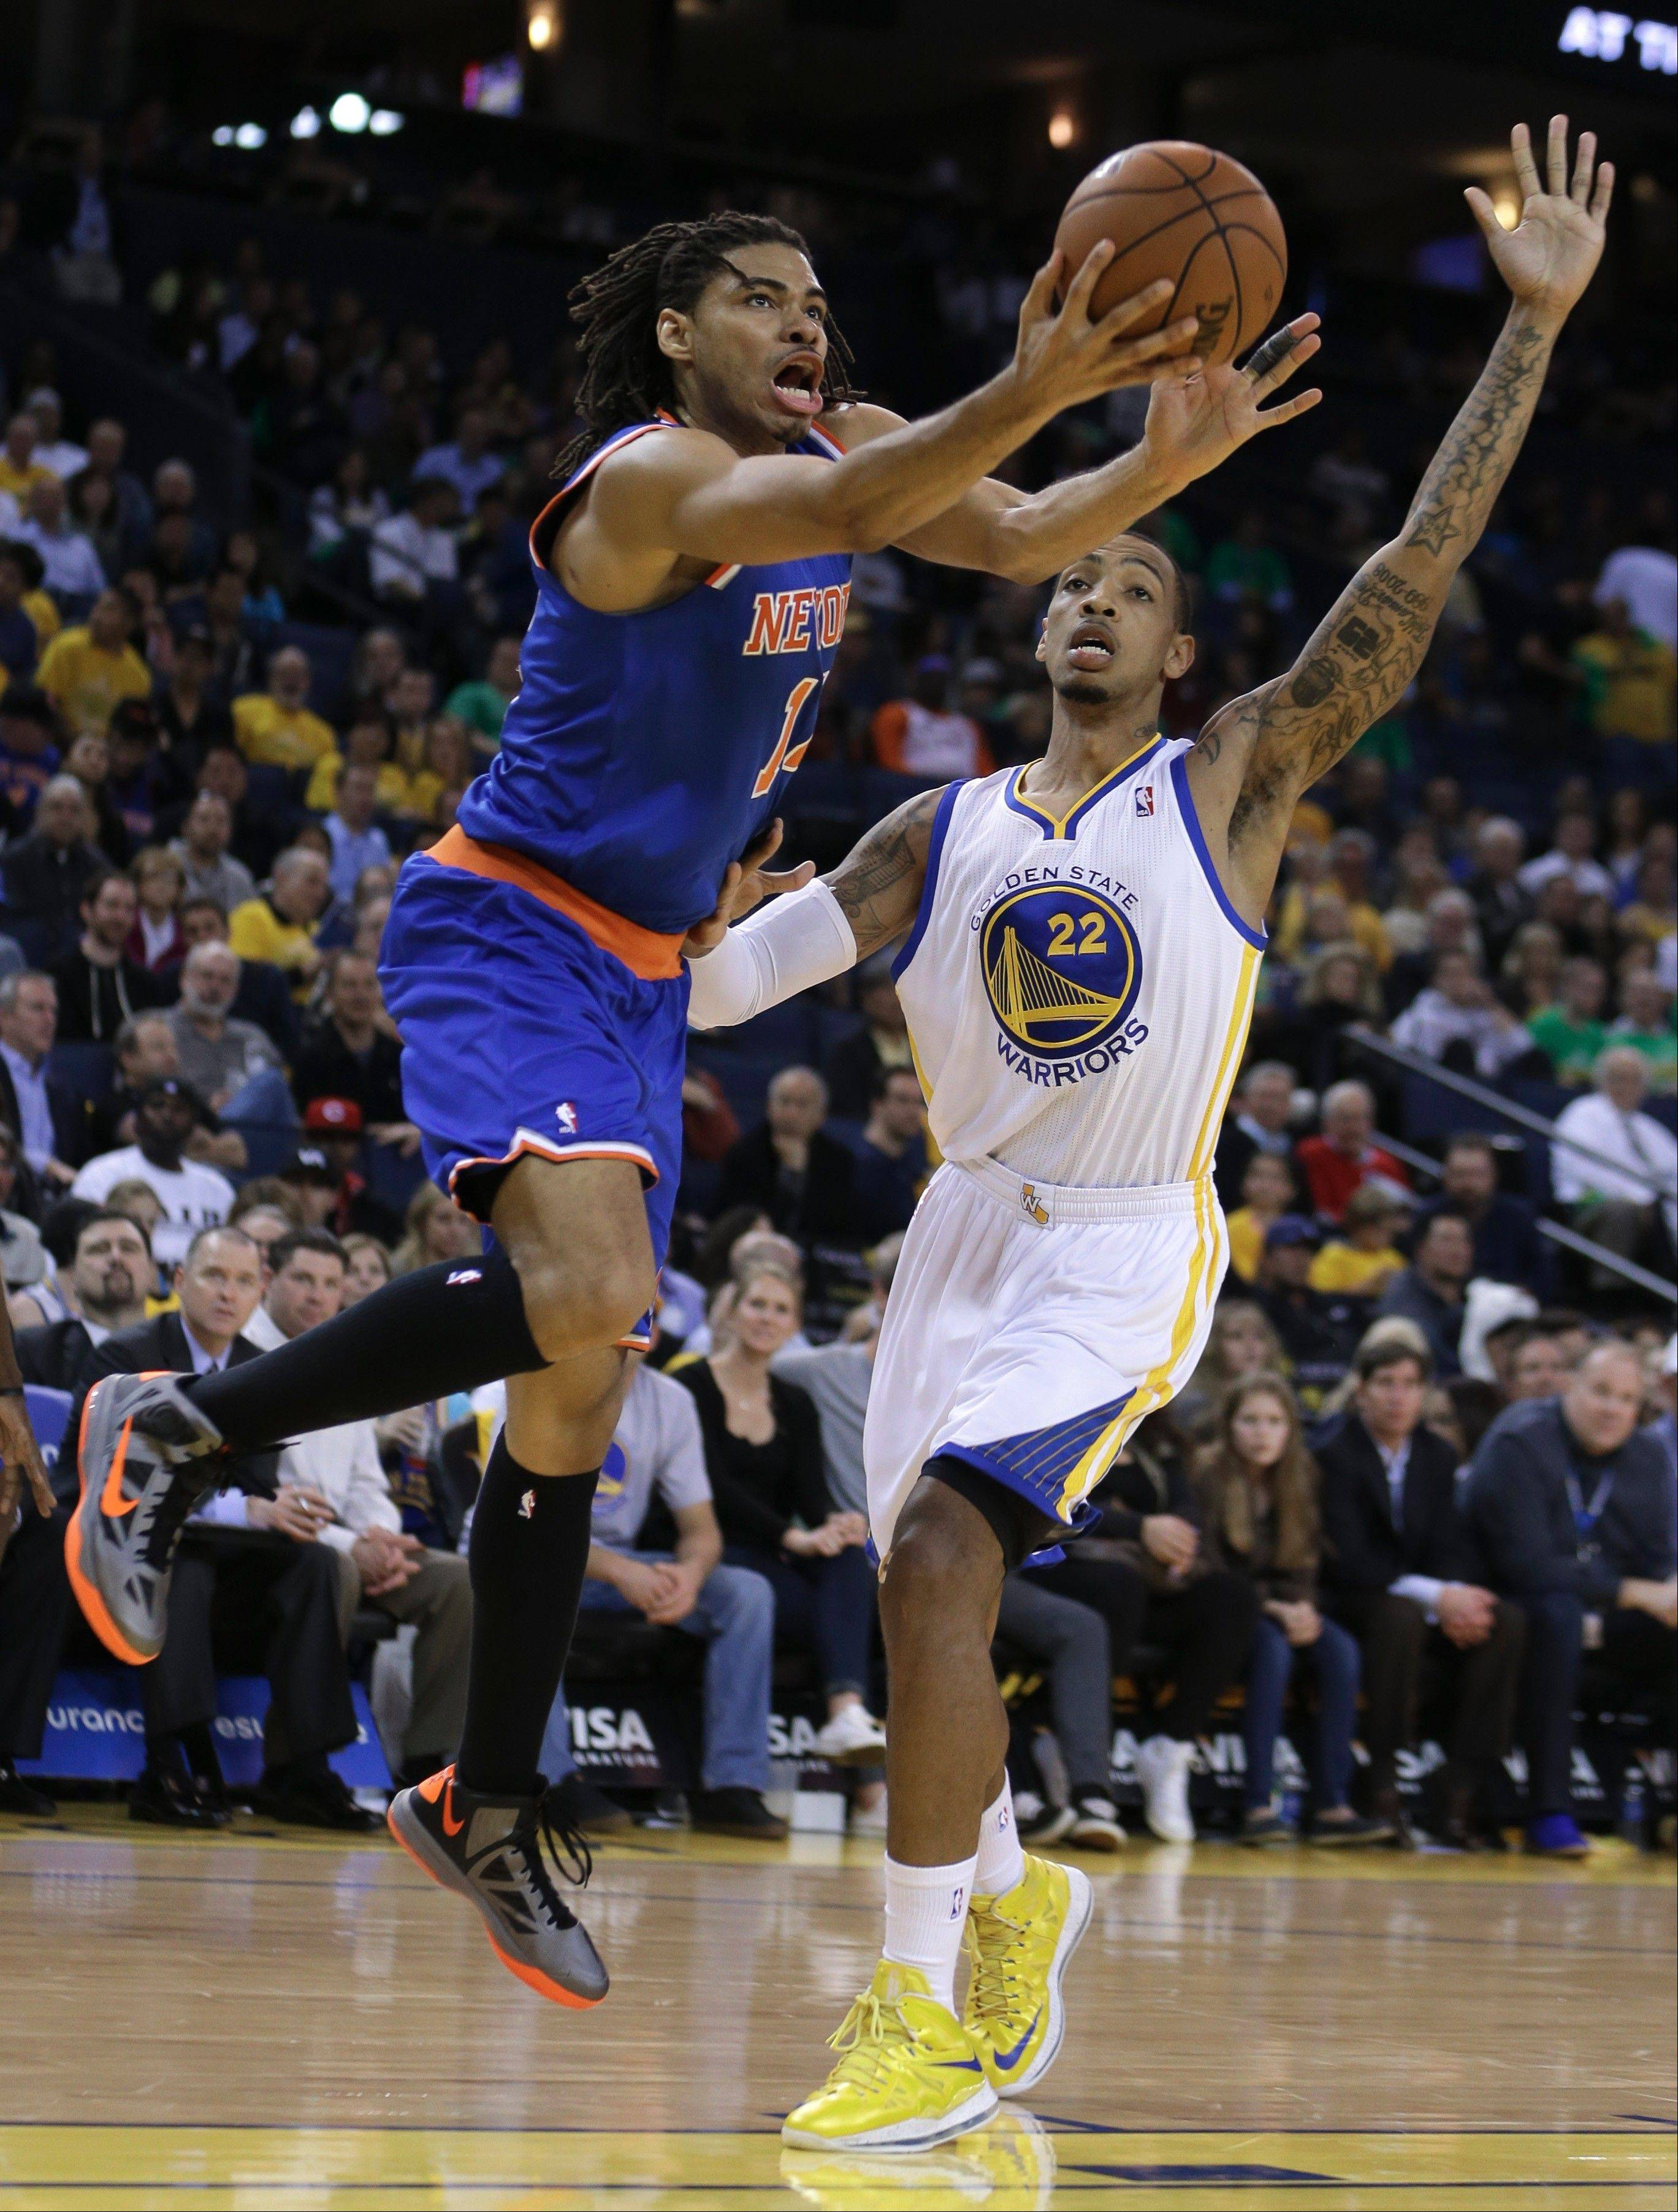 Former Golden State Warriors forward Malcolm Thomas, here defending against the Knicks, has signed a 10-day contract with the Chicago Bulls.